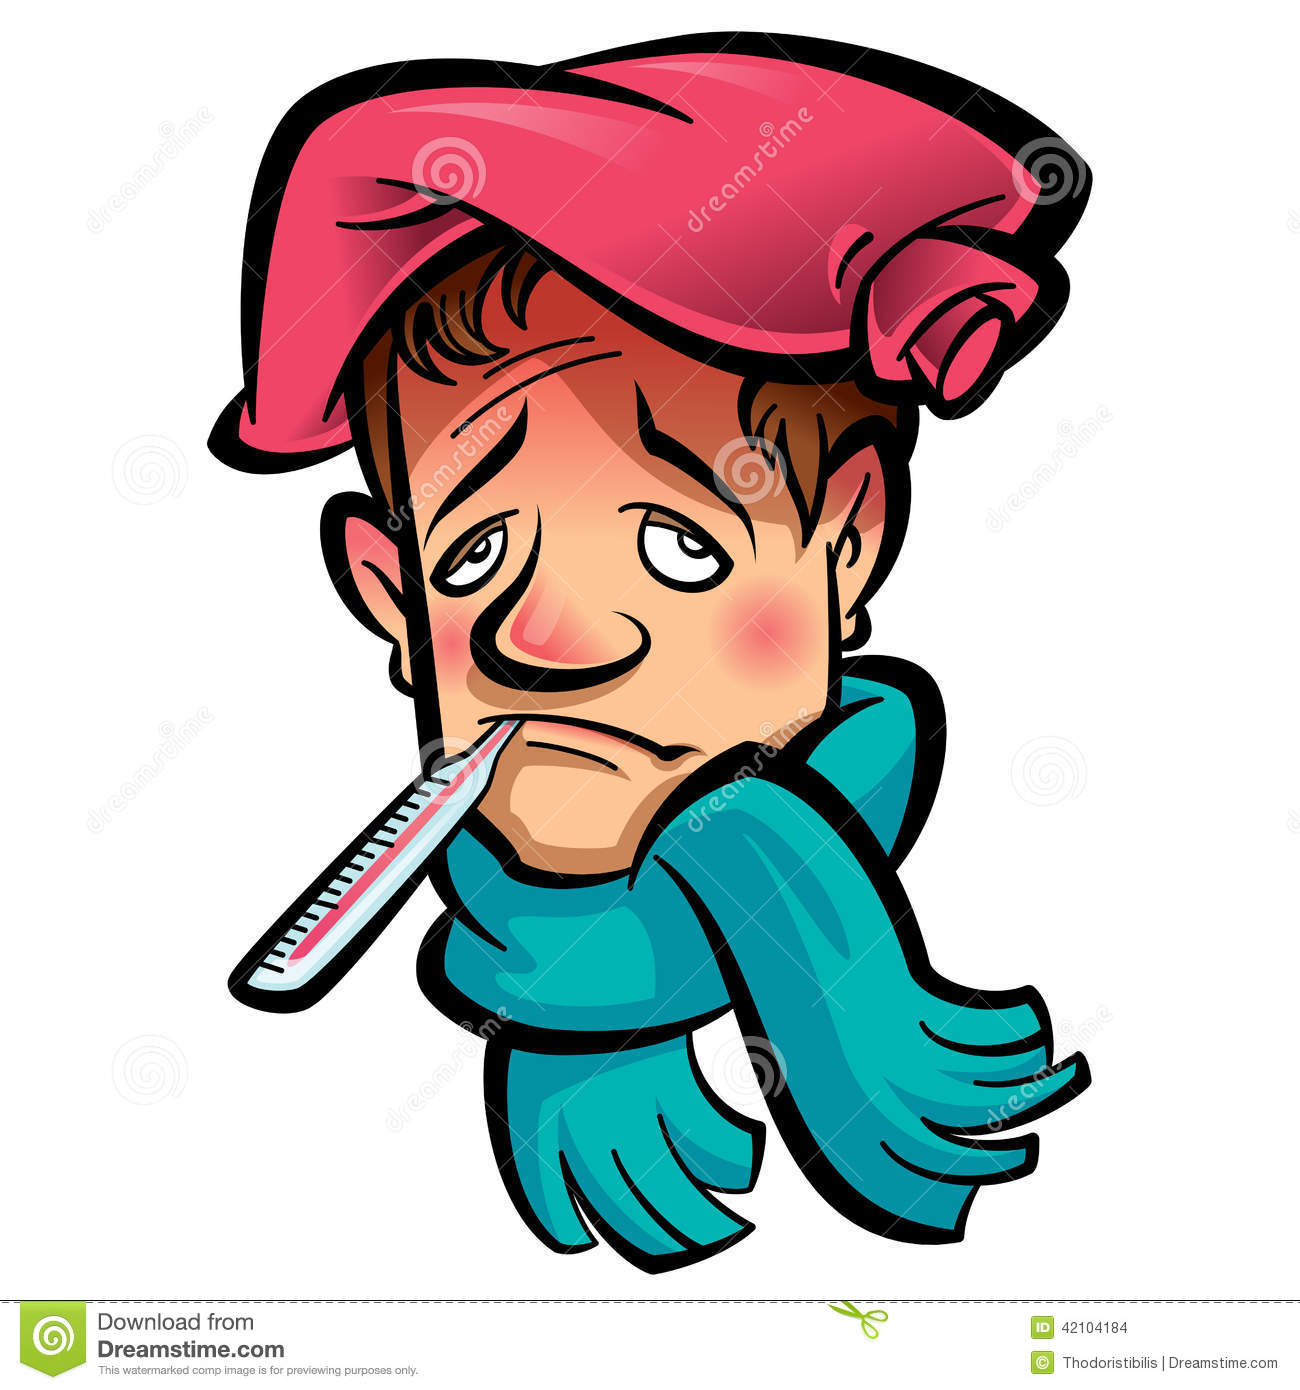 Clipart sick person 4 » Clipart Station.